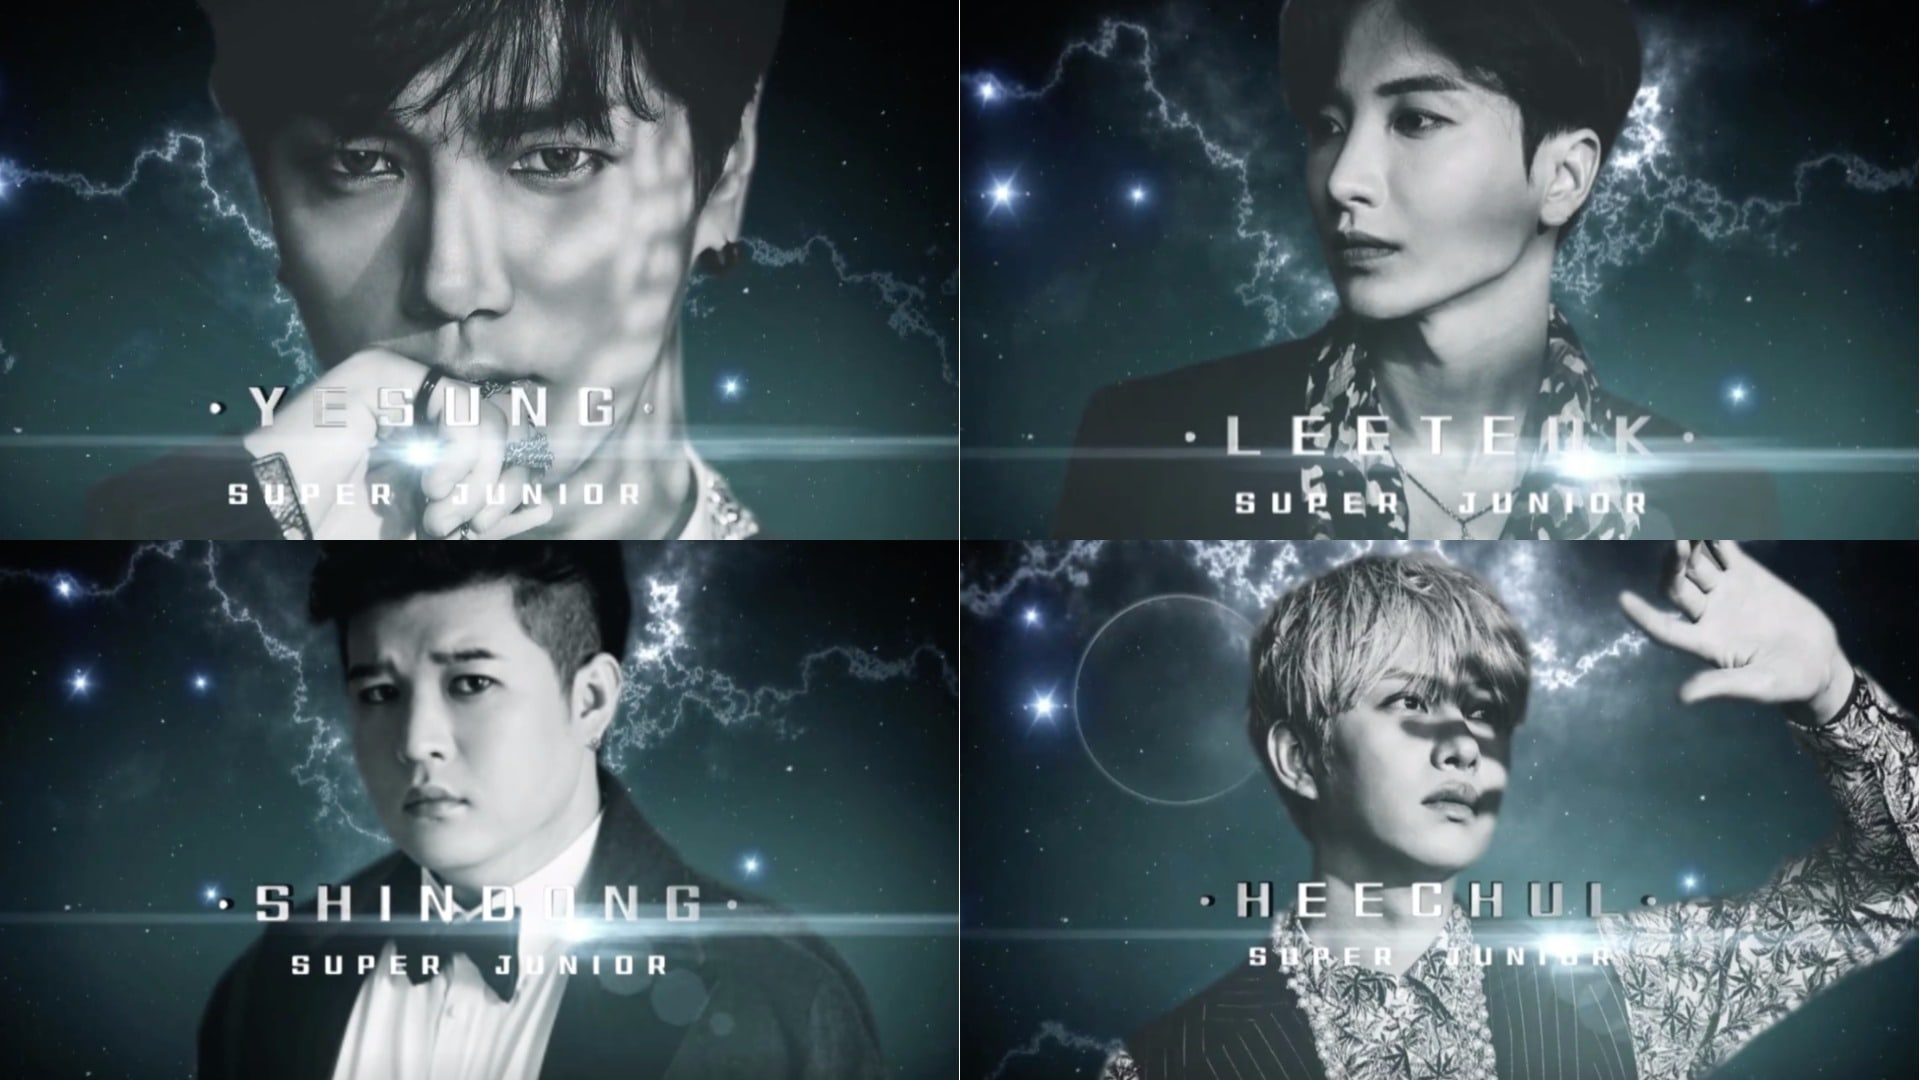 """Watch: Super Junior Drops Teasers For Yesung, Leeteuk, Shindong, And Heechul In """"SJ Returns"""" Reality Show"""